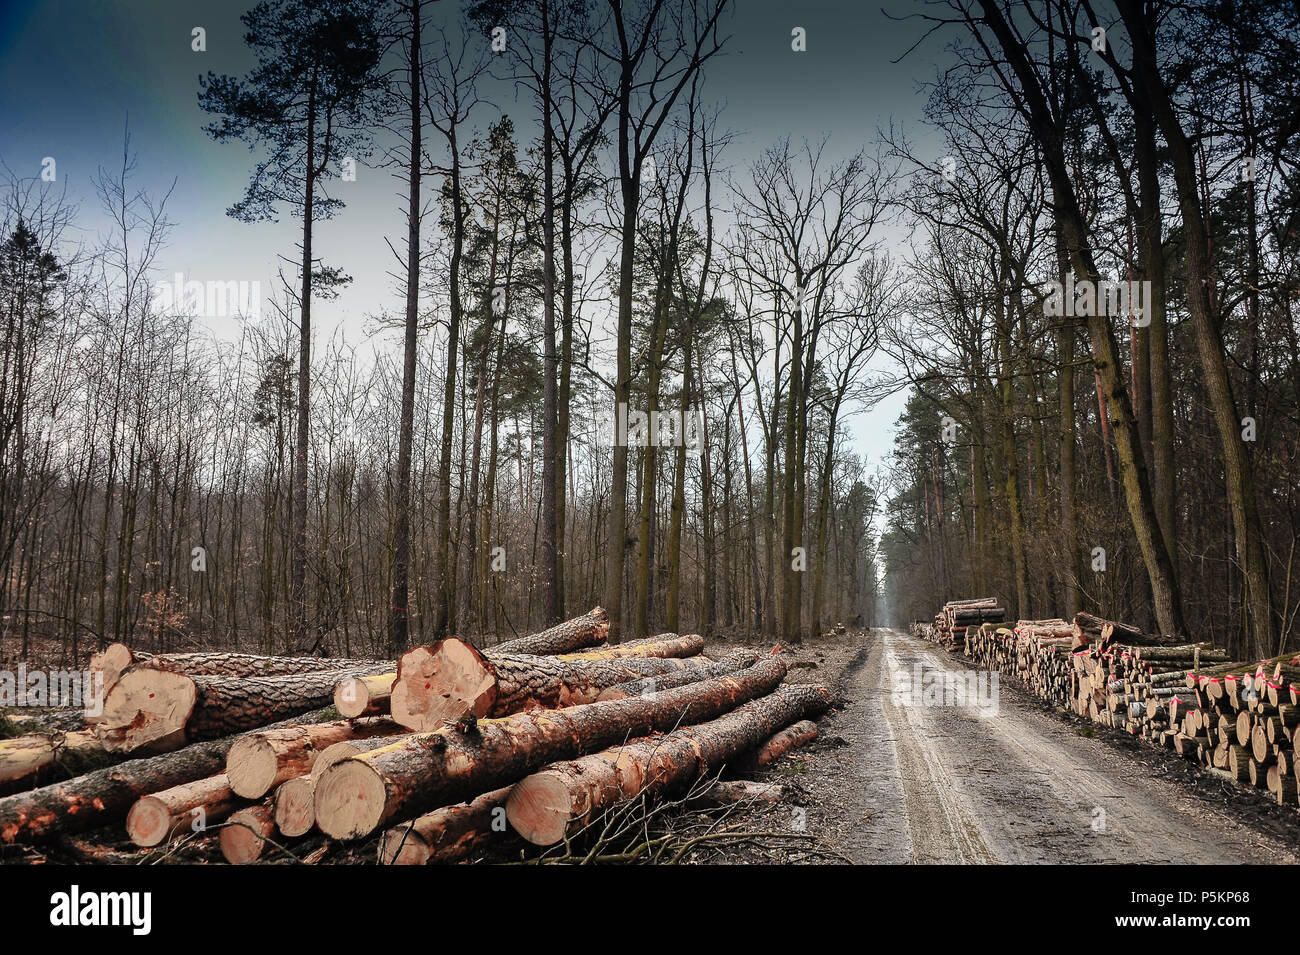 Track through a winter forest with felled trees on either side. Dark moody sky, stark landscape in Chojnow (Chojnowski) Forest, Piaseczno area, Poland - Stock Image